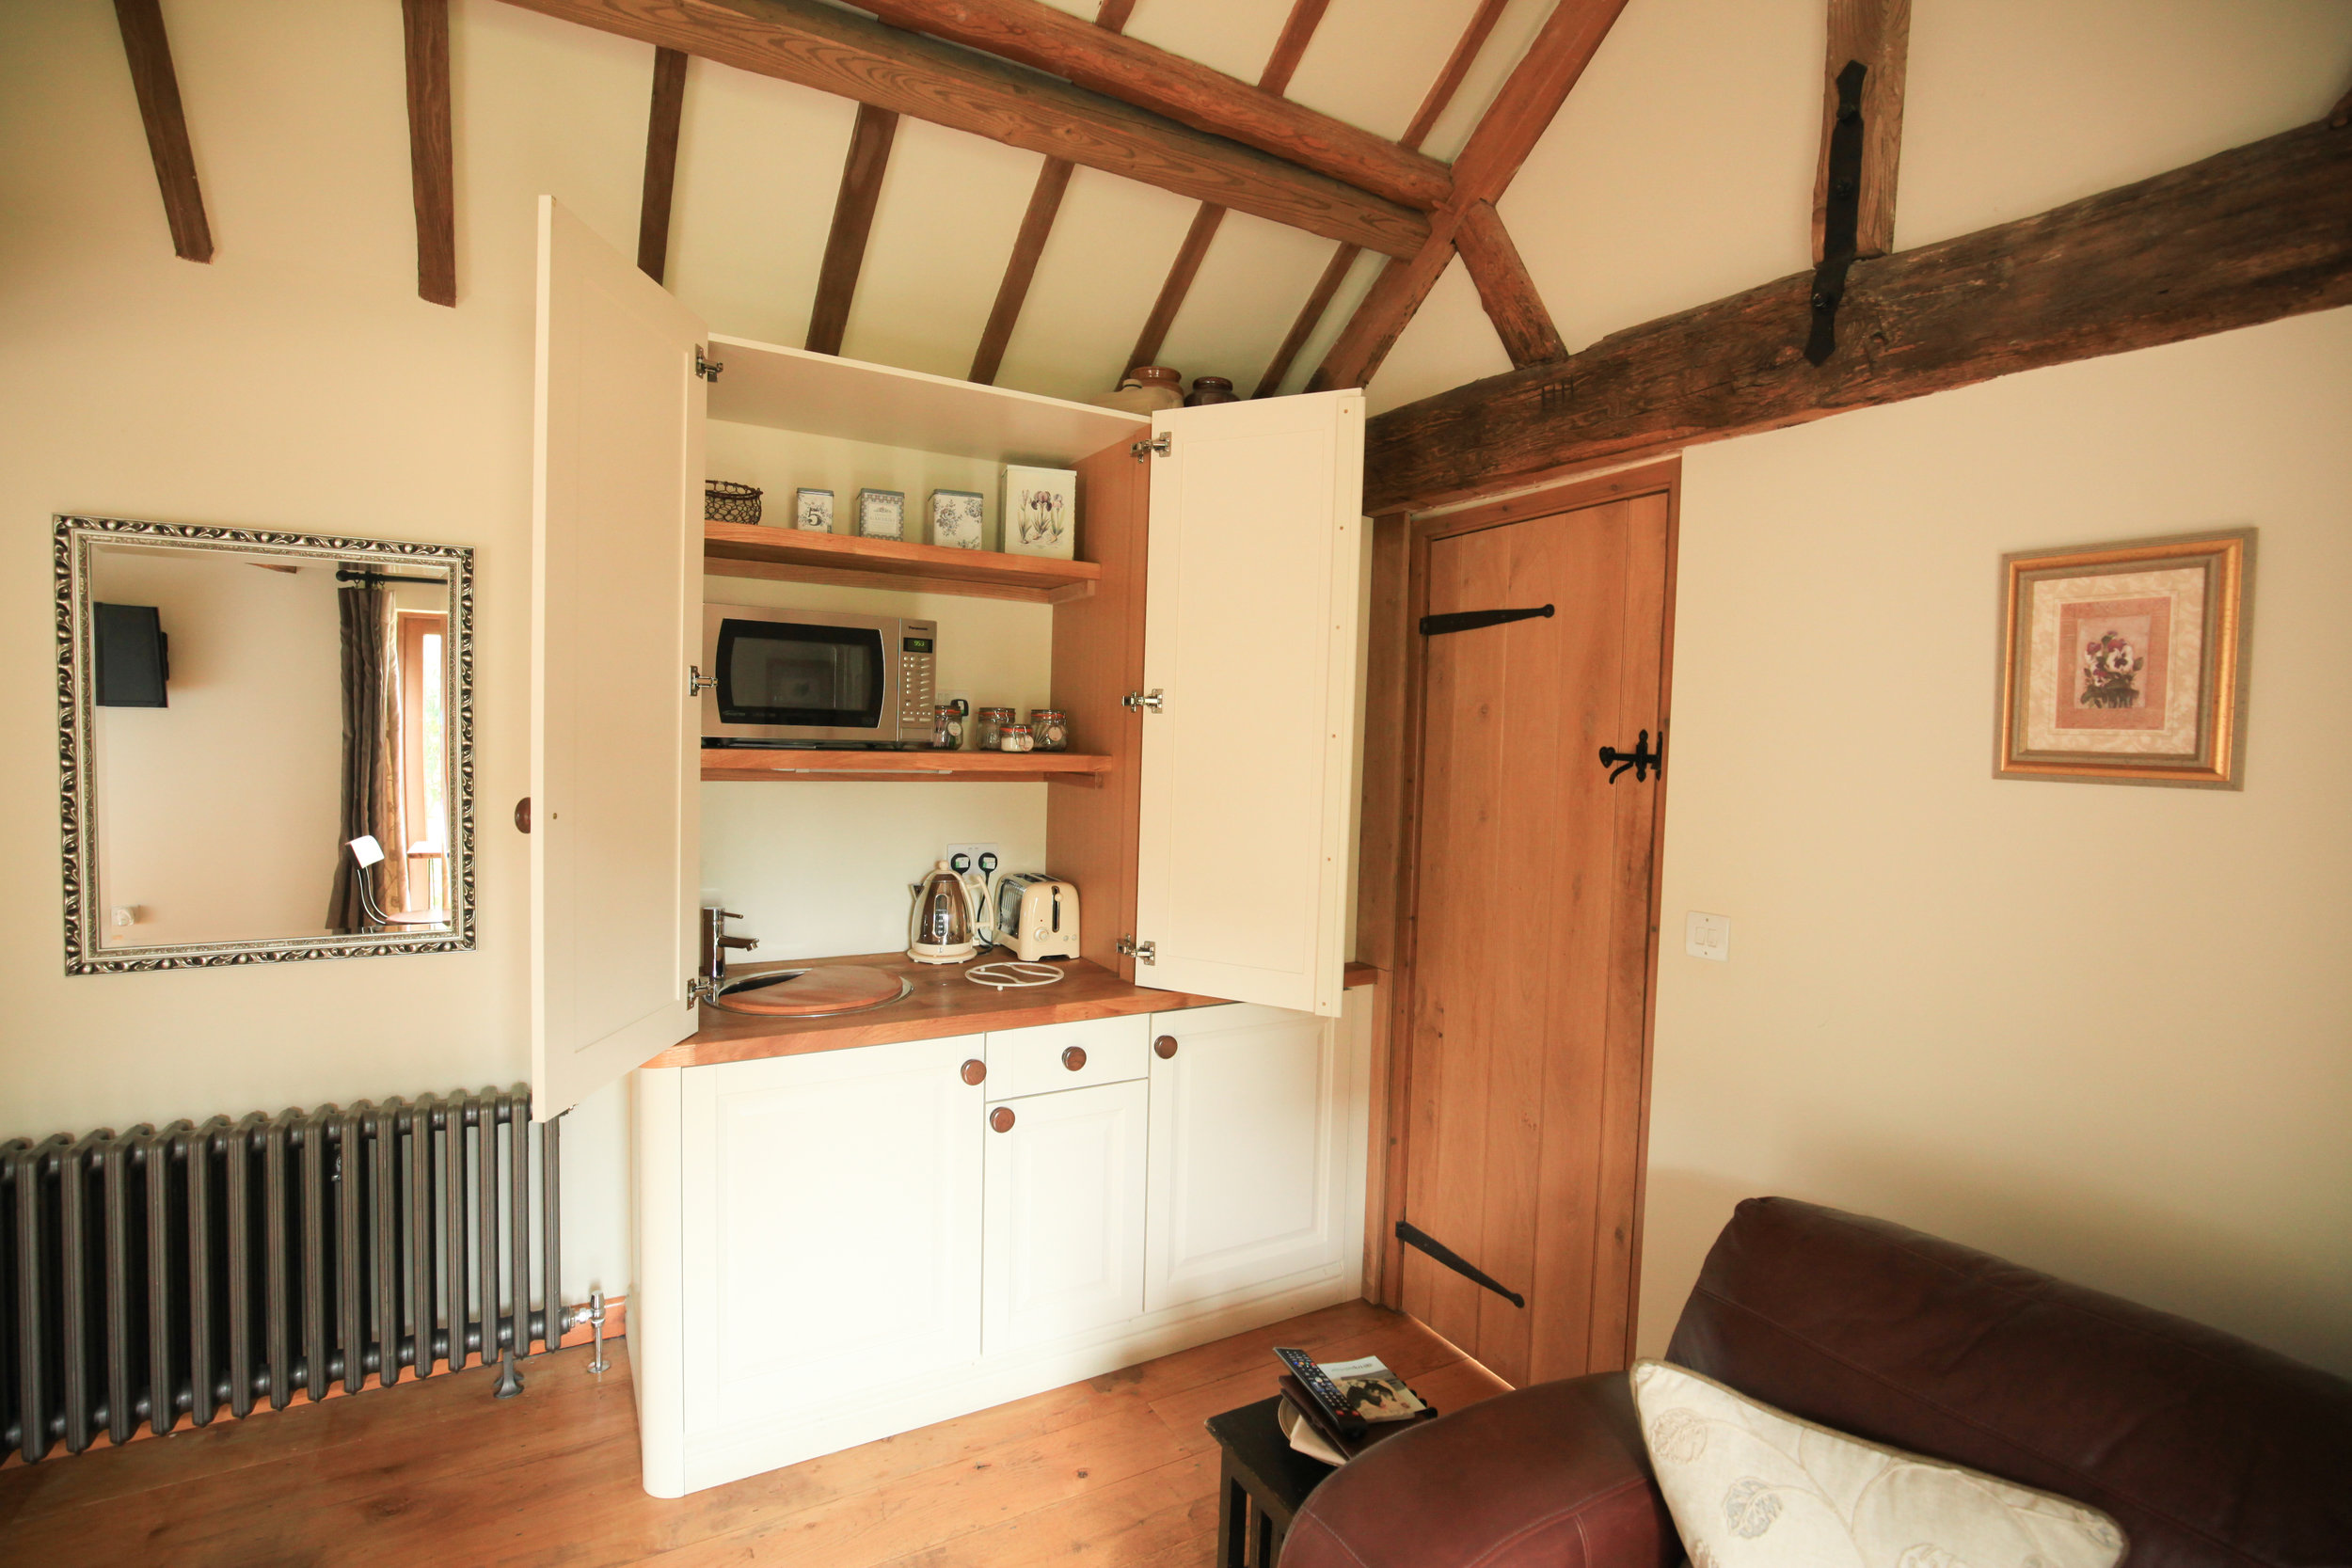 Stables - kitchen from a distance.jpg